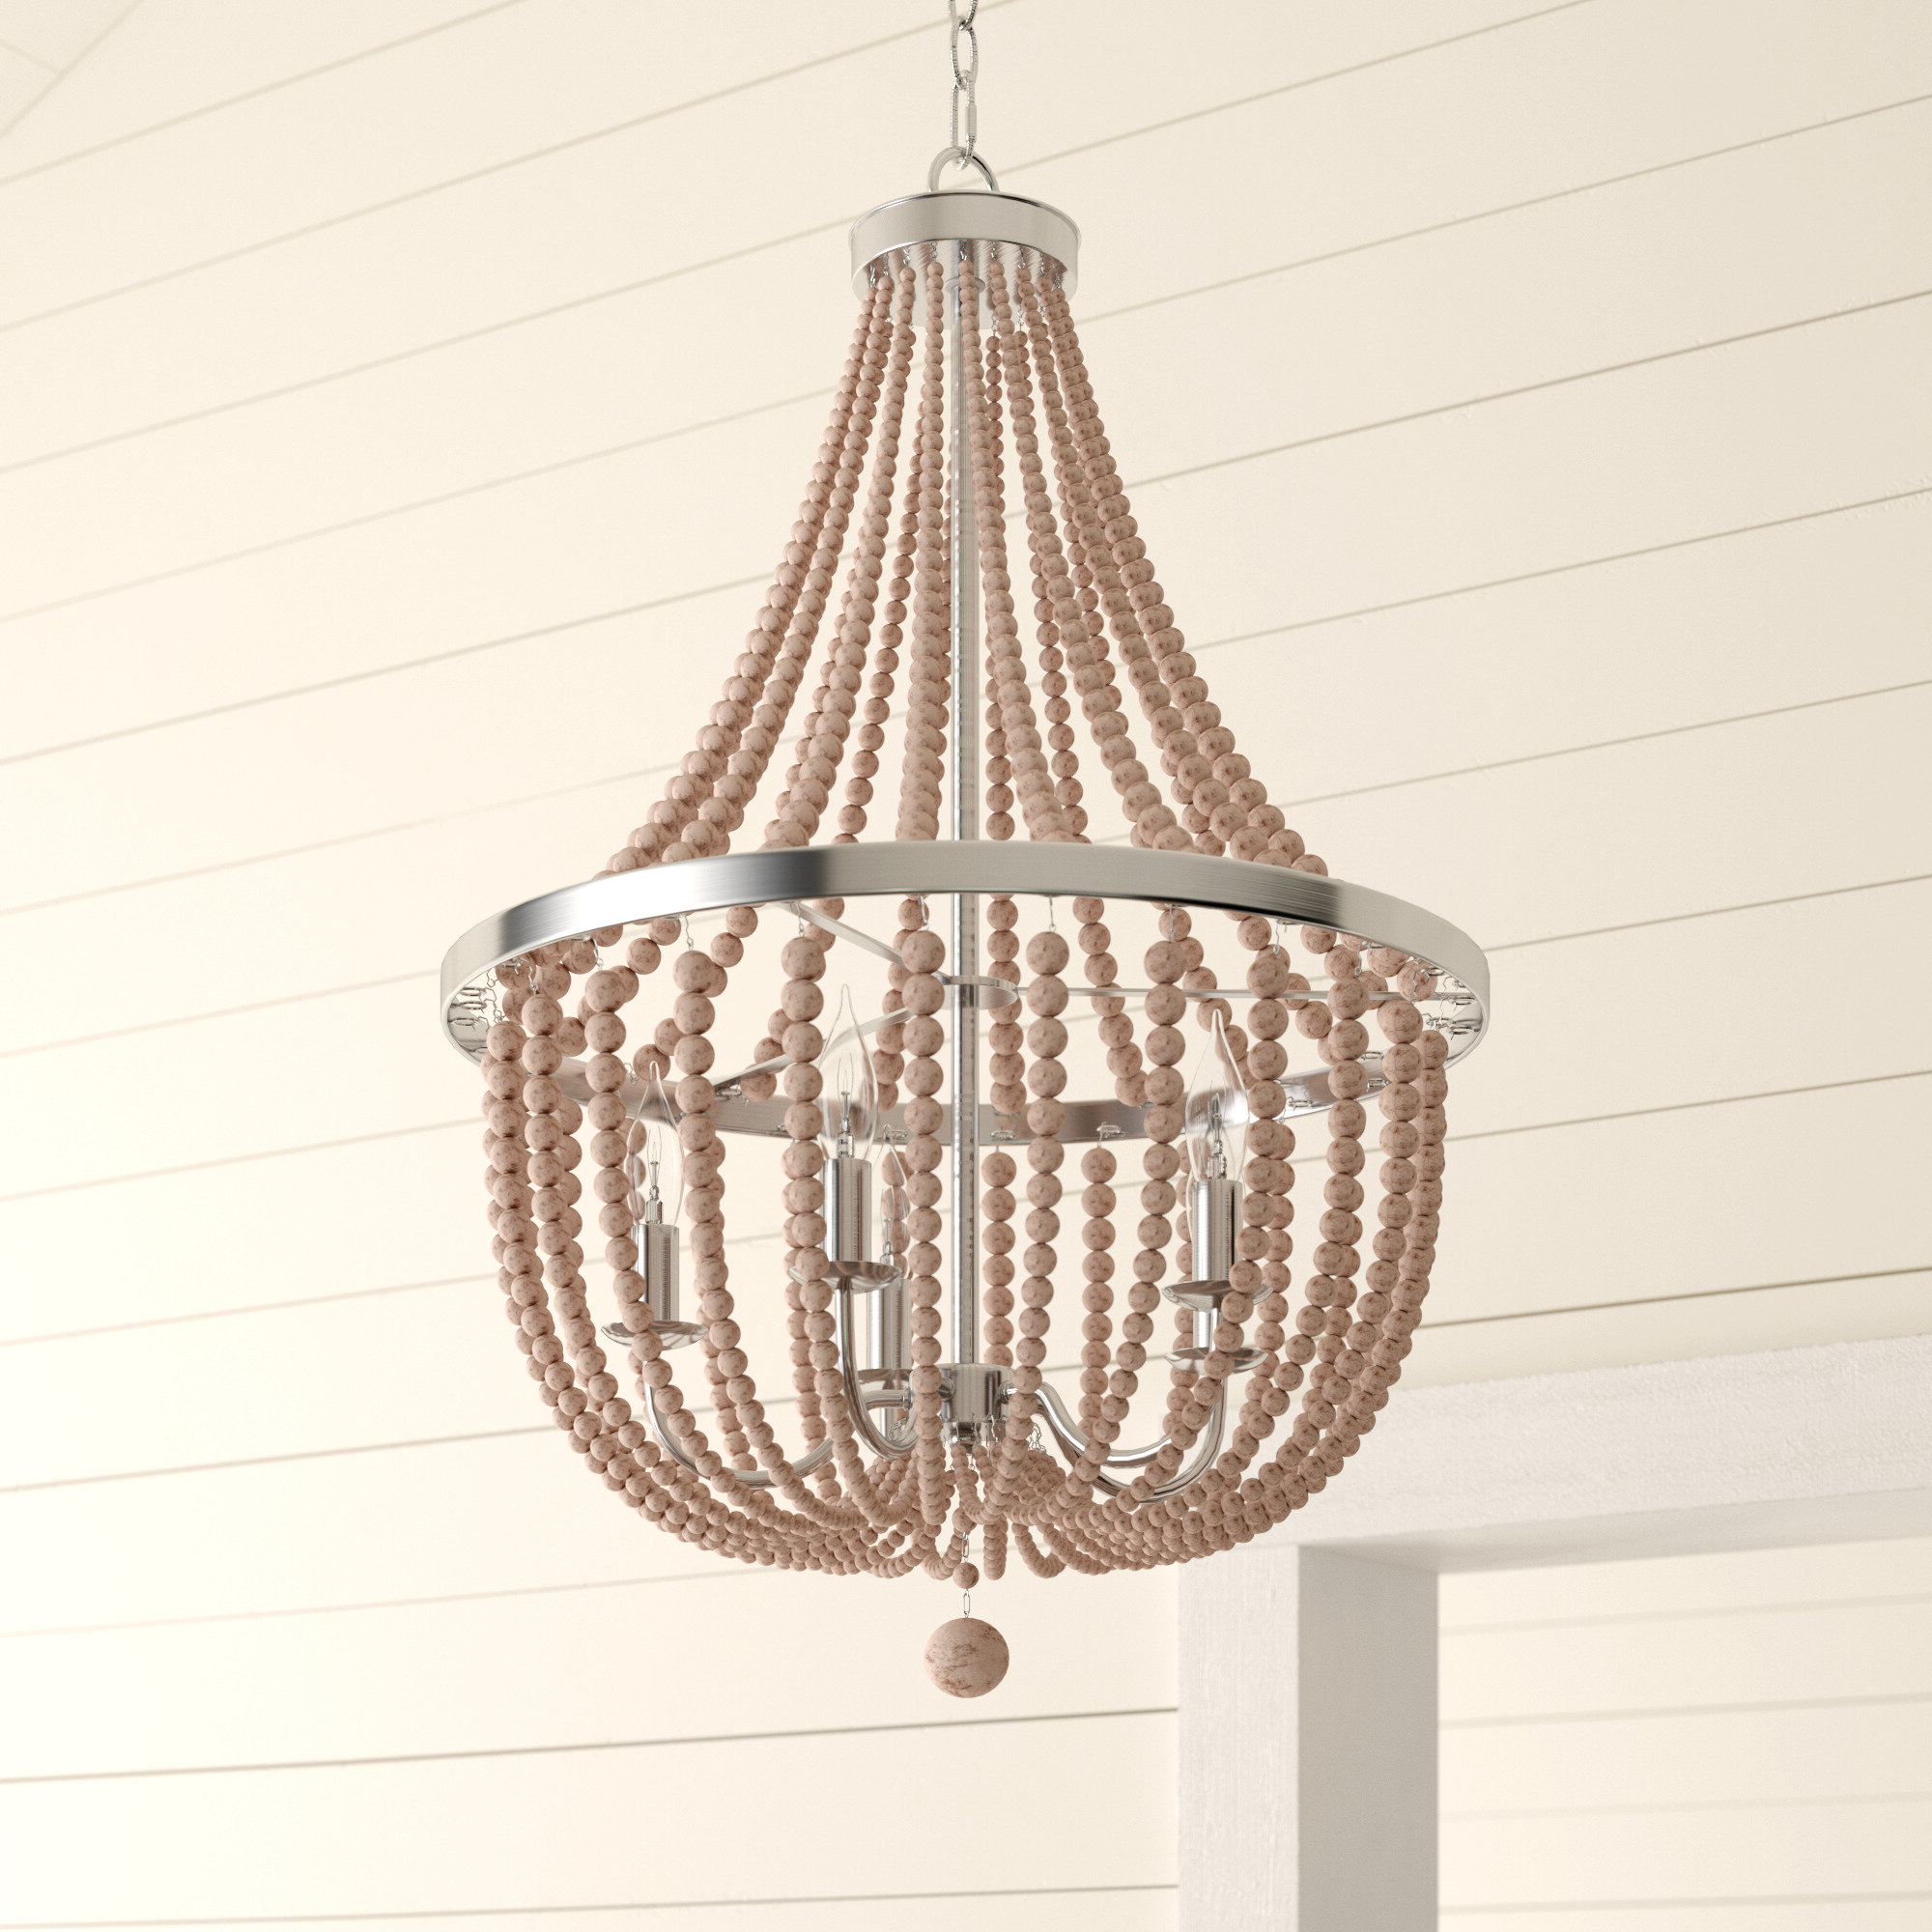 Trendy Duron 5 Light Empire Chandeliers For Bay Isle Home Tilden Wood Bead 5 Light Empire Chandelier (View 13 of 25)